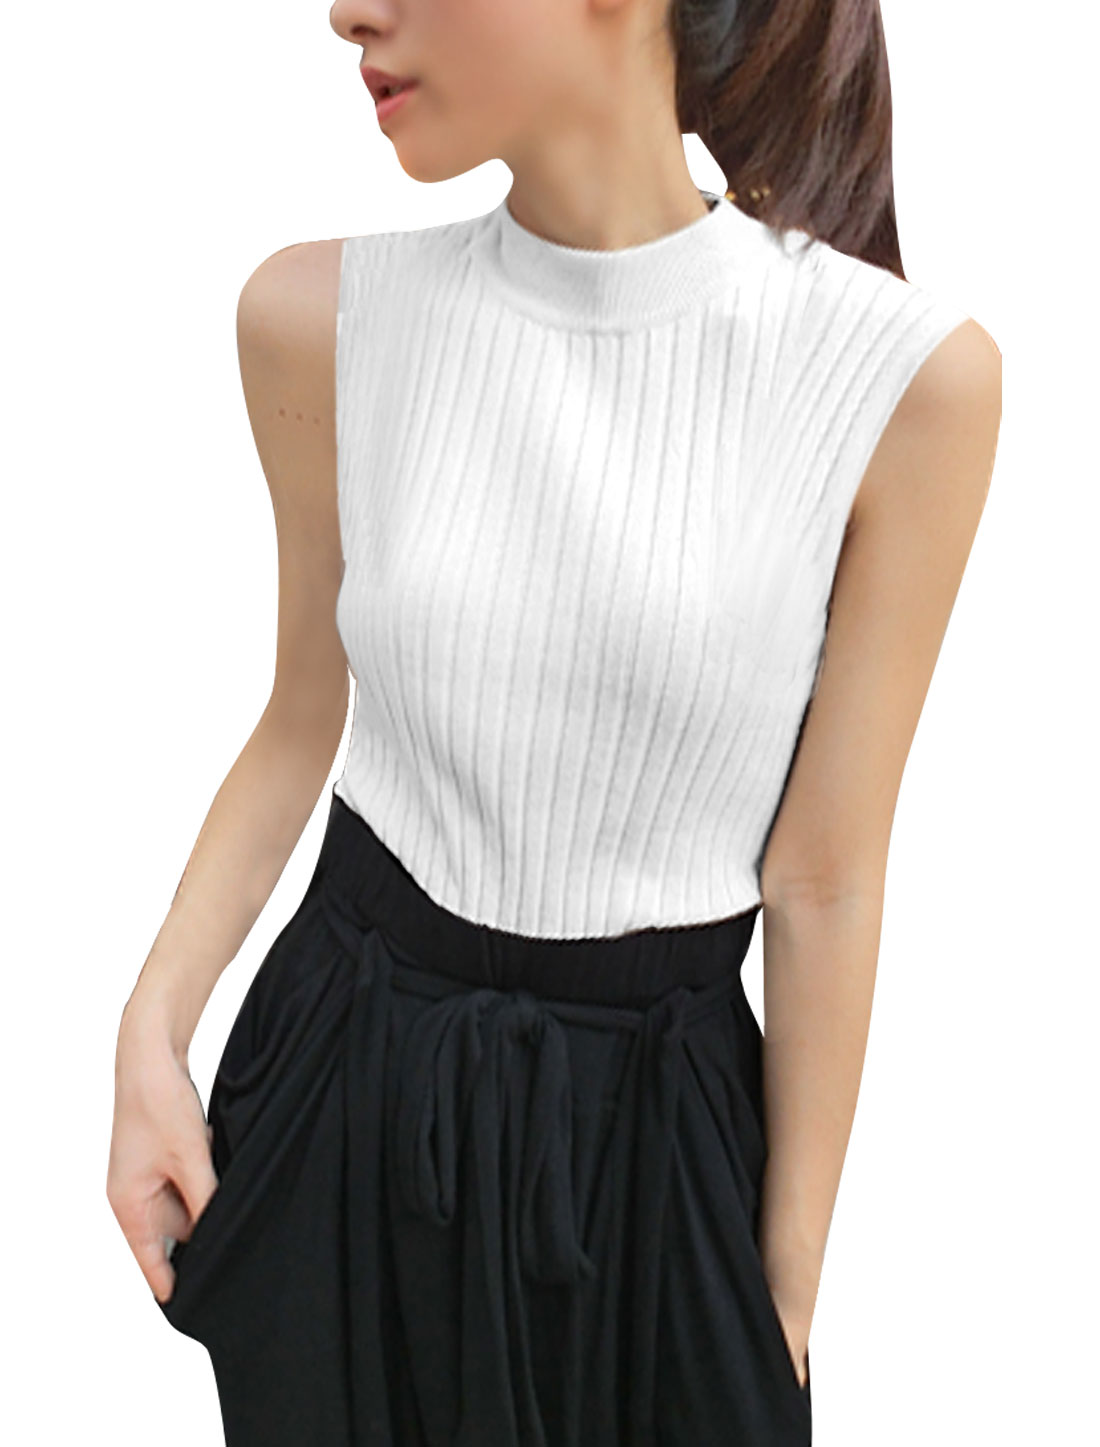 Women Mock Neck Pullover Sleeveless Knitted Tank Top White XS